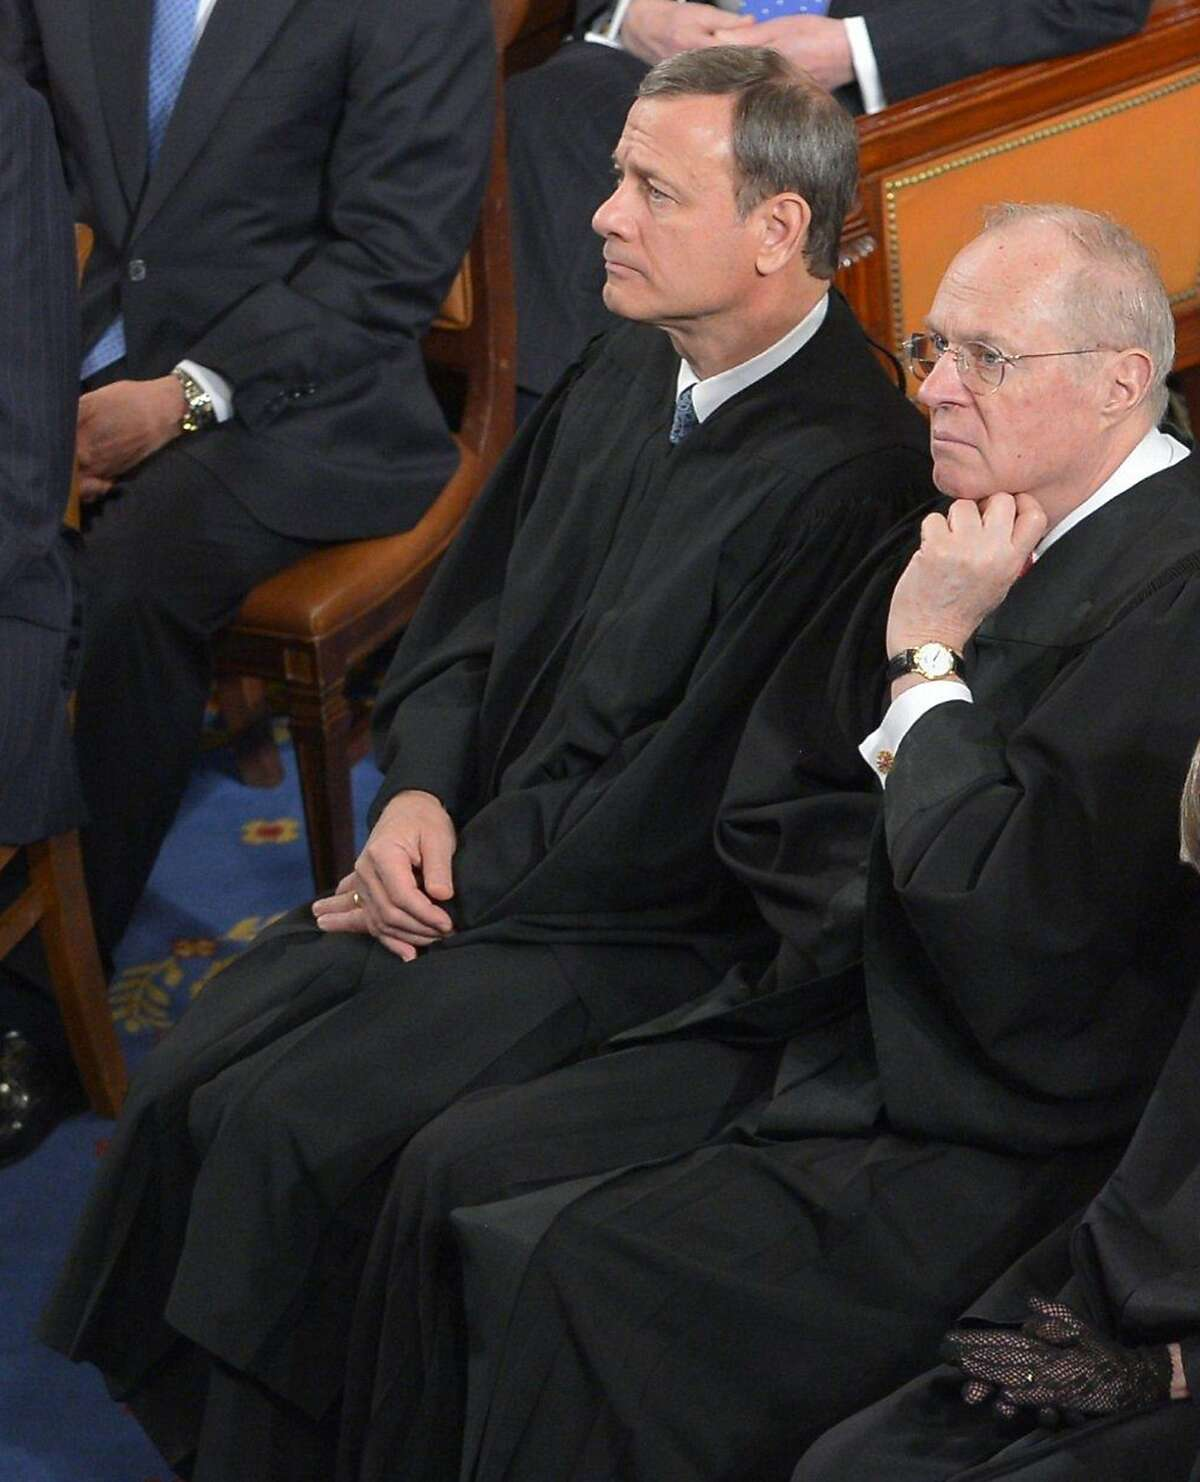 """(FILES) This February 12, 2013 file photo shows US Supreme Court Chief Justice John Roberts and Justice Anthony Kennedy(R)as they listen to US President Barack Obama deliver his State of the Union address before a joint session of Congress at the Capitol in Washington. He was appointed in the 1980s under the conservative presidency of Ronald Reagan, but Supreme Court Justice Anthony Kennedy has gone on to become perhaps the most important gay rights supporter in the American legal system.The gray-haired 78-year-old cemented that position June 26, 2015 when he wrote the majority opinion for the five judges -- or justices as they are known -- who ruled to allow gay marriage across the United States. """"No union is more profound than marriage for it embodies the highest ideals of love, fidelity, devotion, sacrifice and family,"""" Kennedy said, his deep voice resonating around the solemn surroundings of the Supreme Court. AFP PHOTO/Mandel NGANMANDEL NGAN/AFP/Getty Images"""